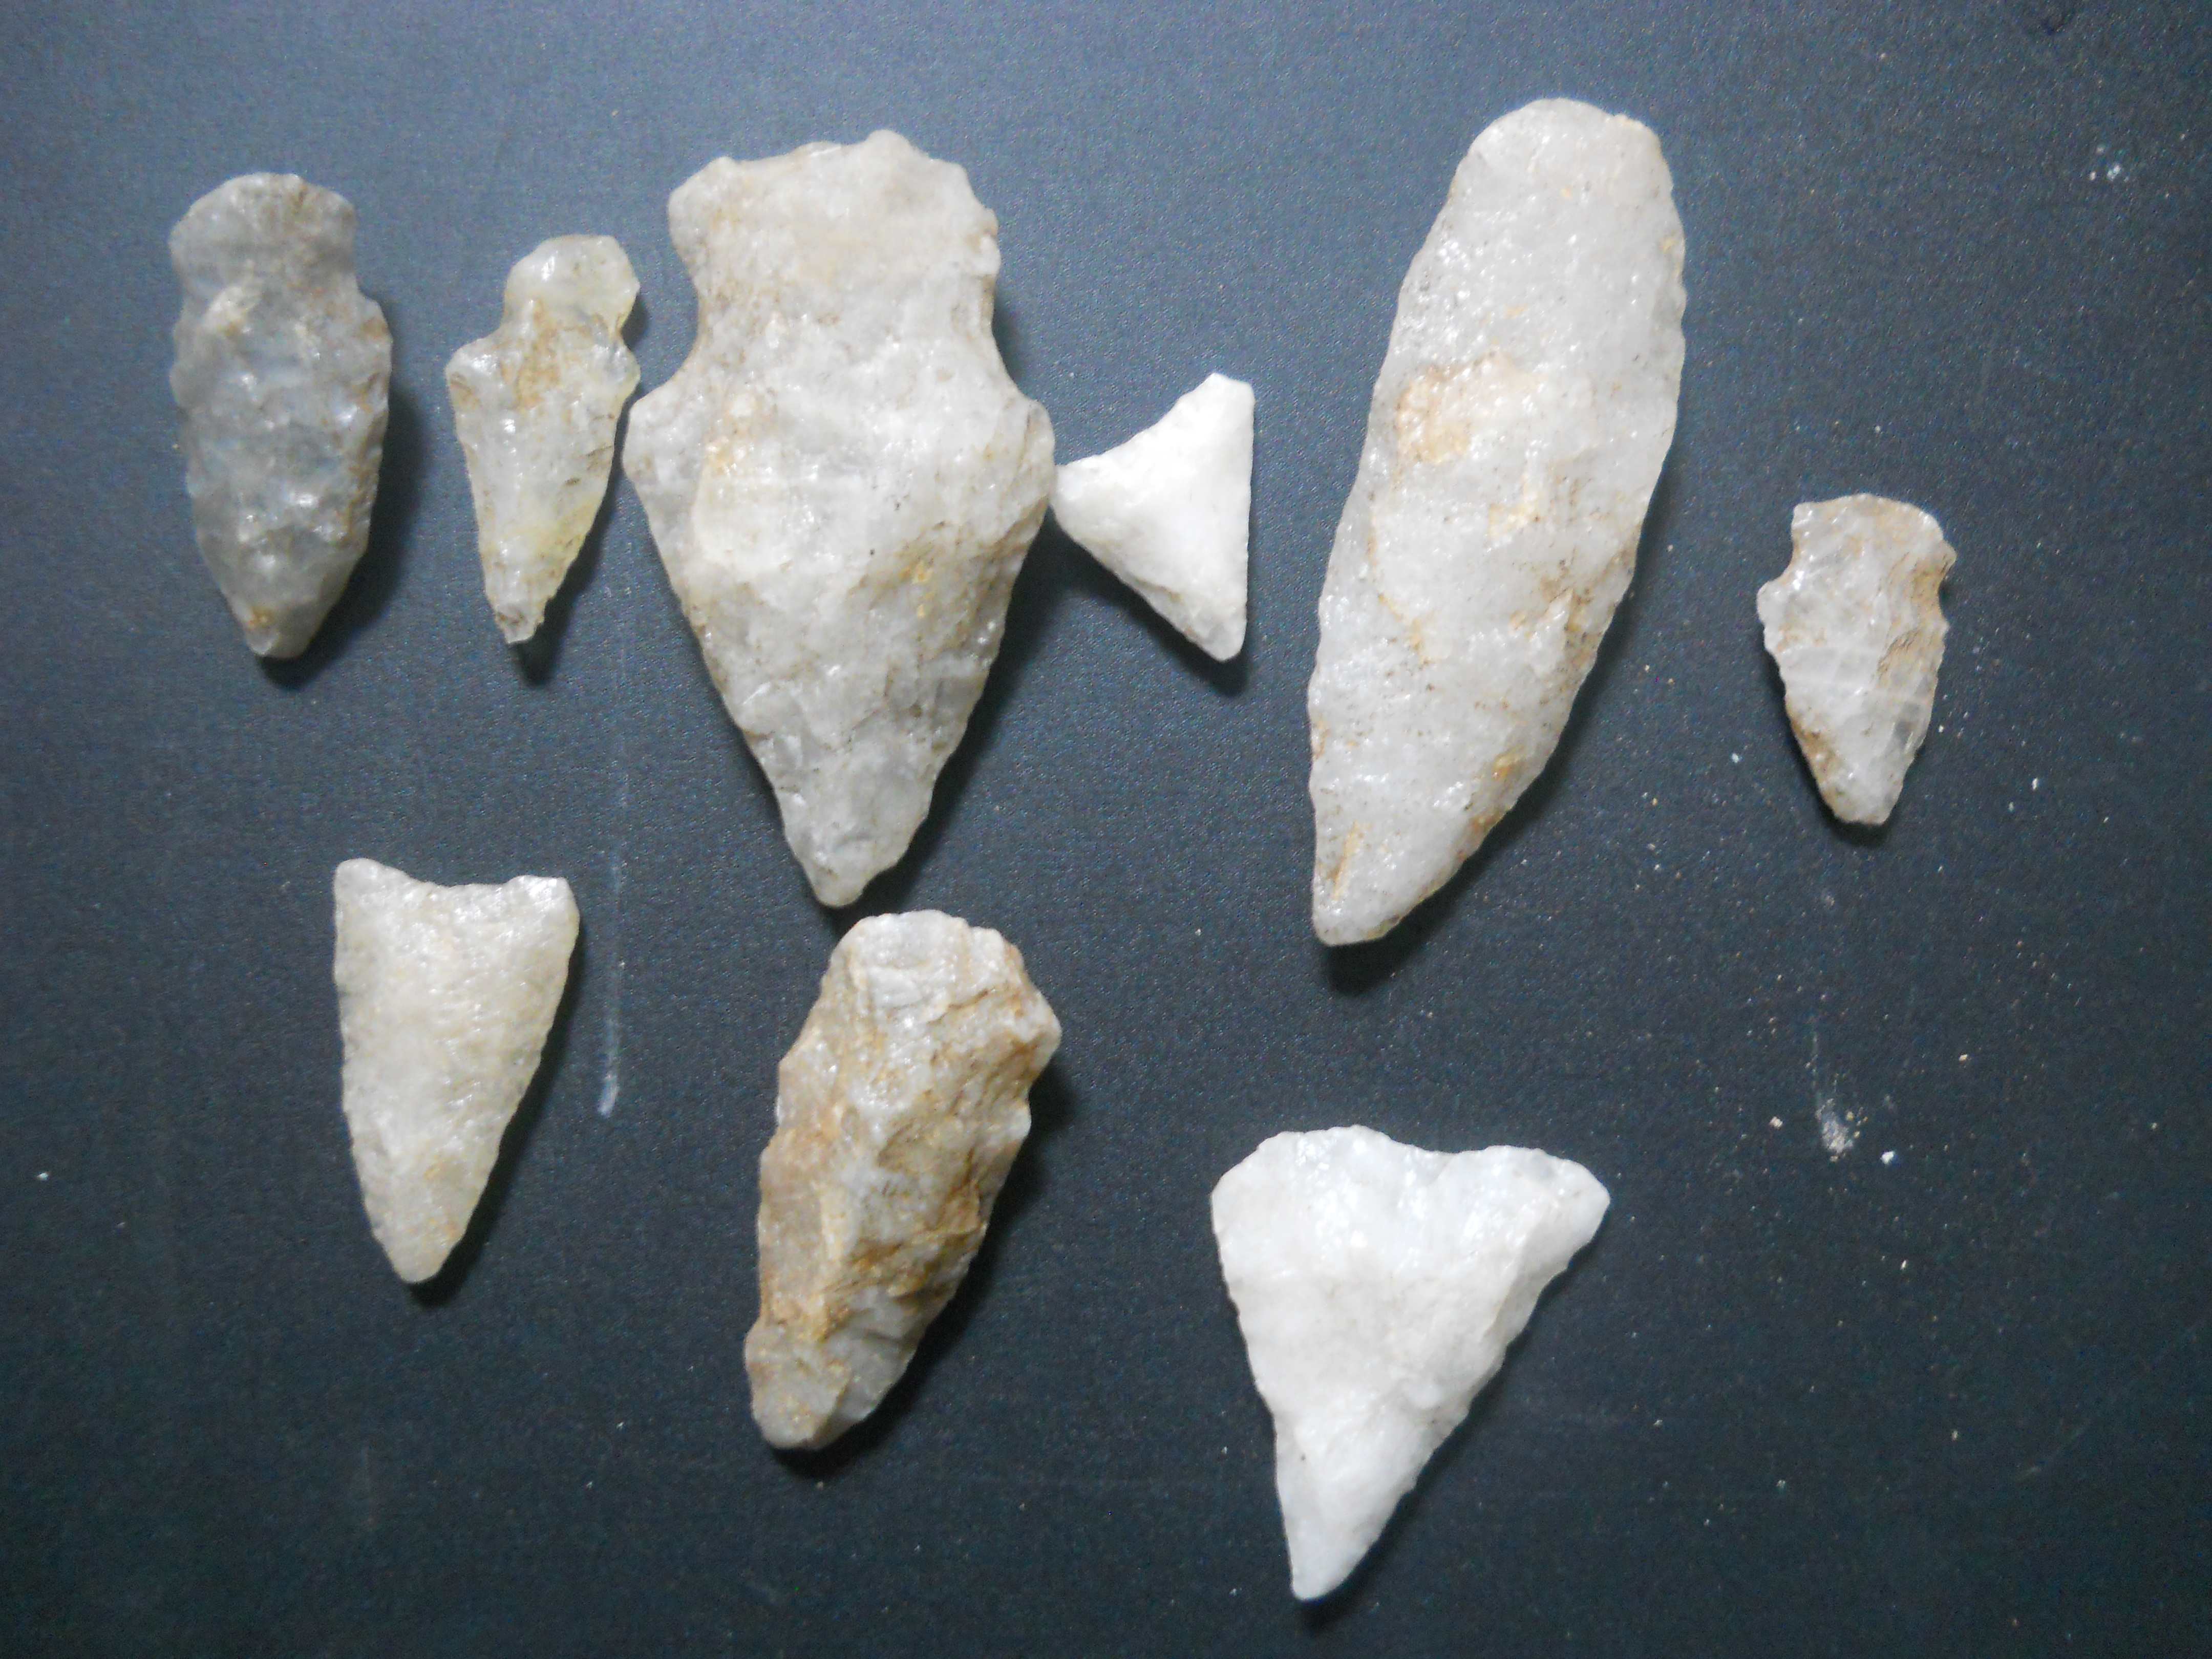 Ancient Indian Stone Tools Reveal New Things About